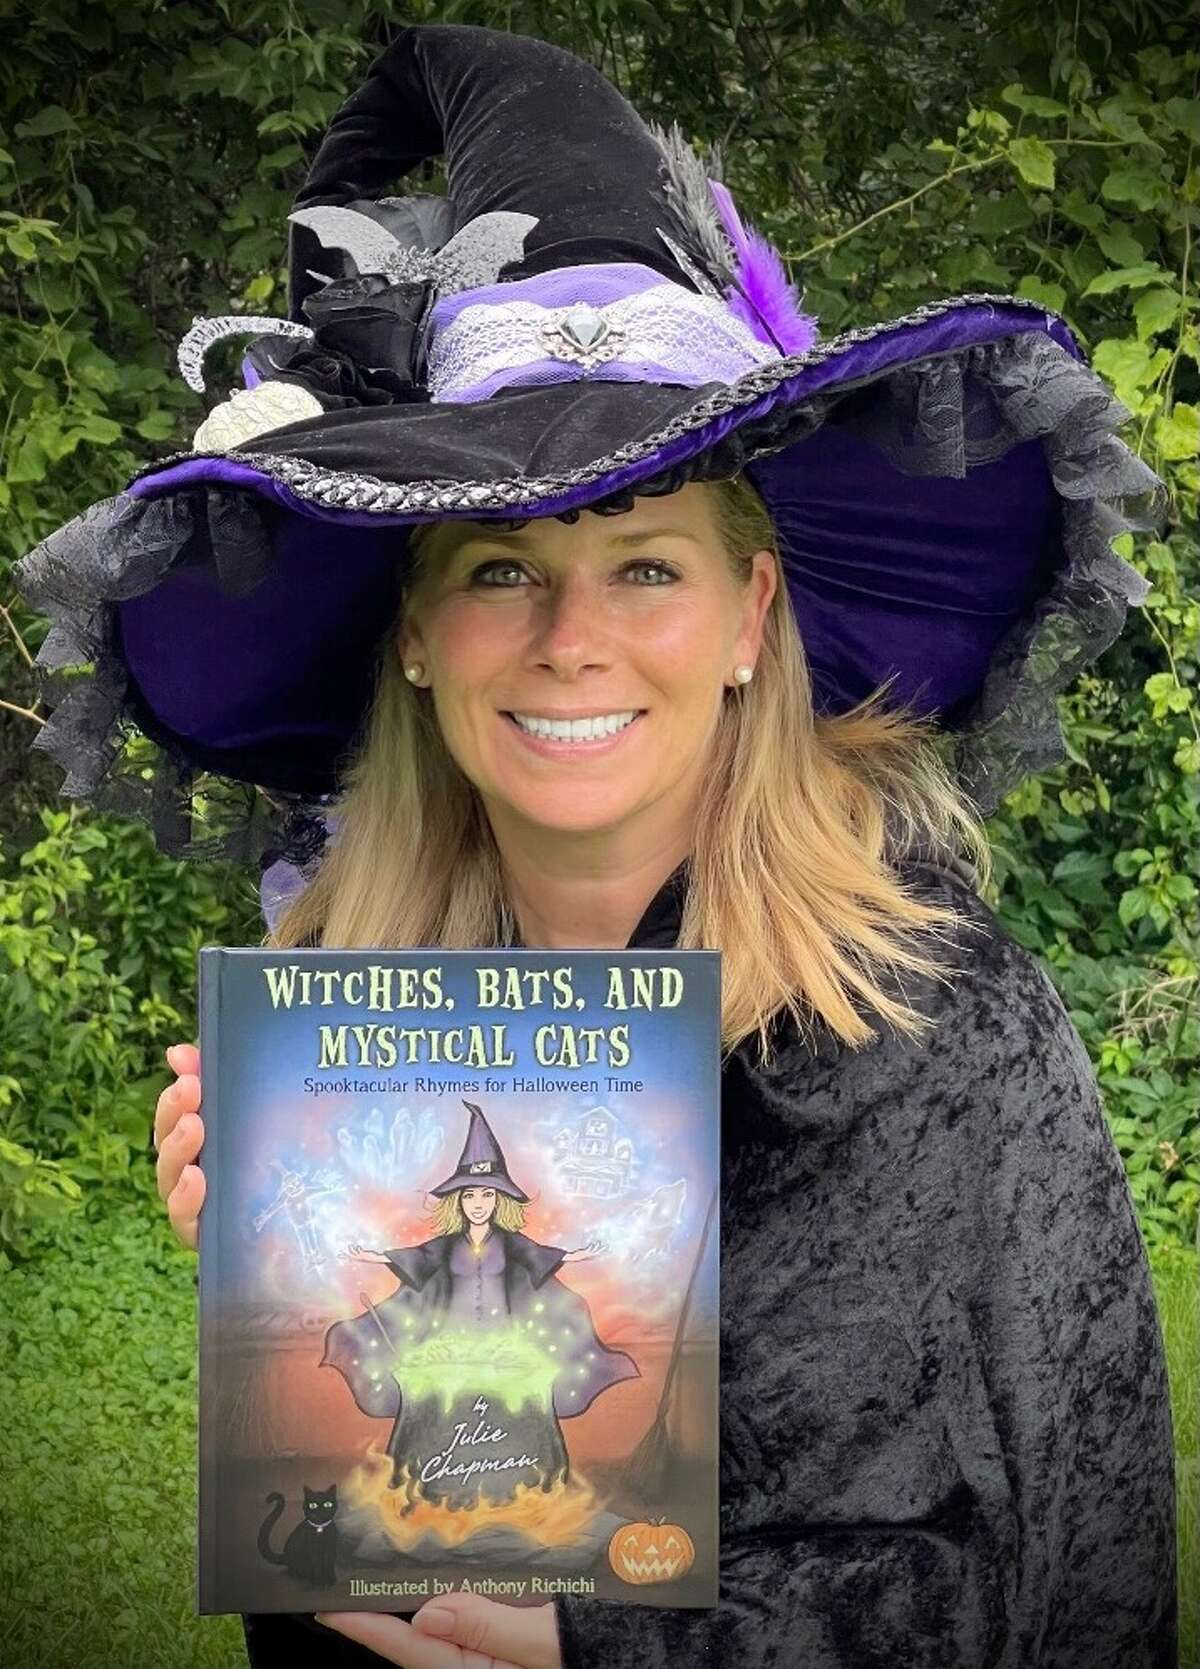 """Julie Chapman has published her first book, """"Witches, Bats, and Mystical Cats - Spooktacular Rhymes for Halloween Time."""" The first shipment sold out in a week at Barnes & Noble in Colonie Center."""